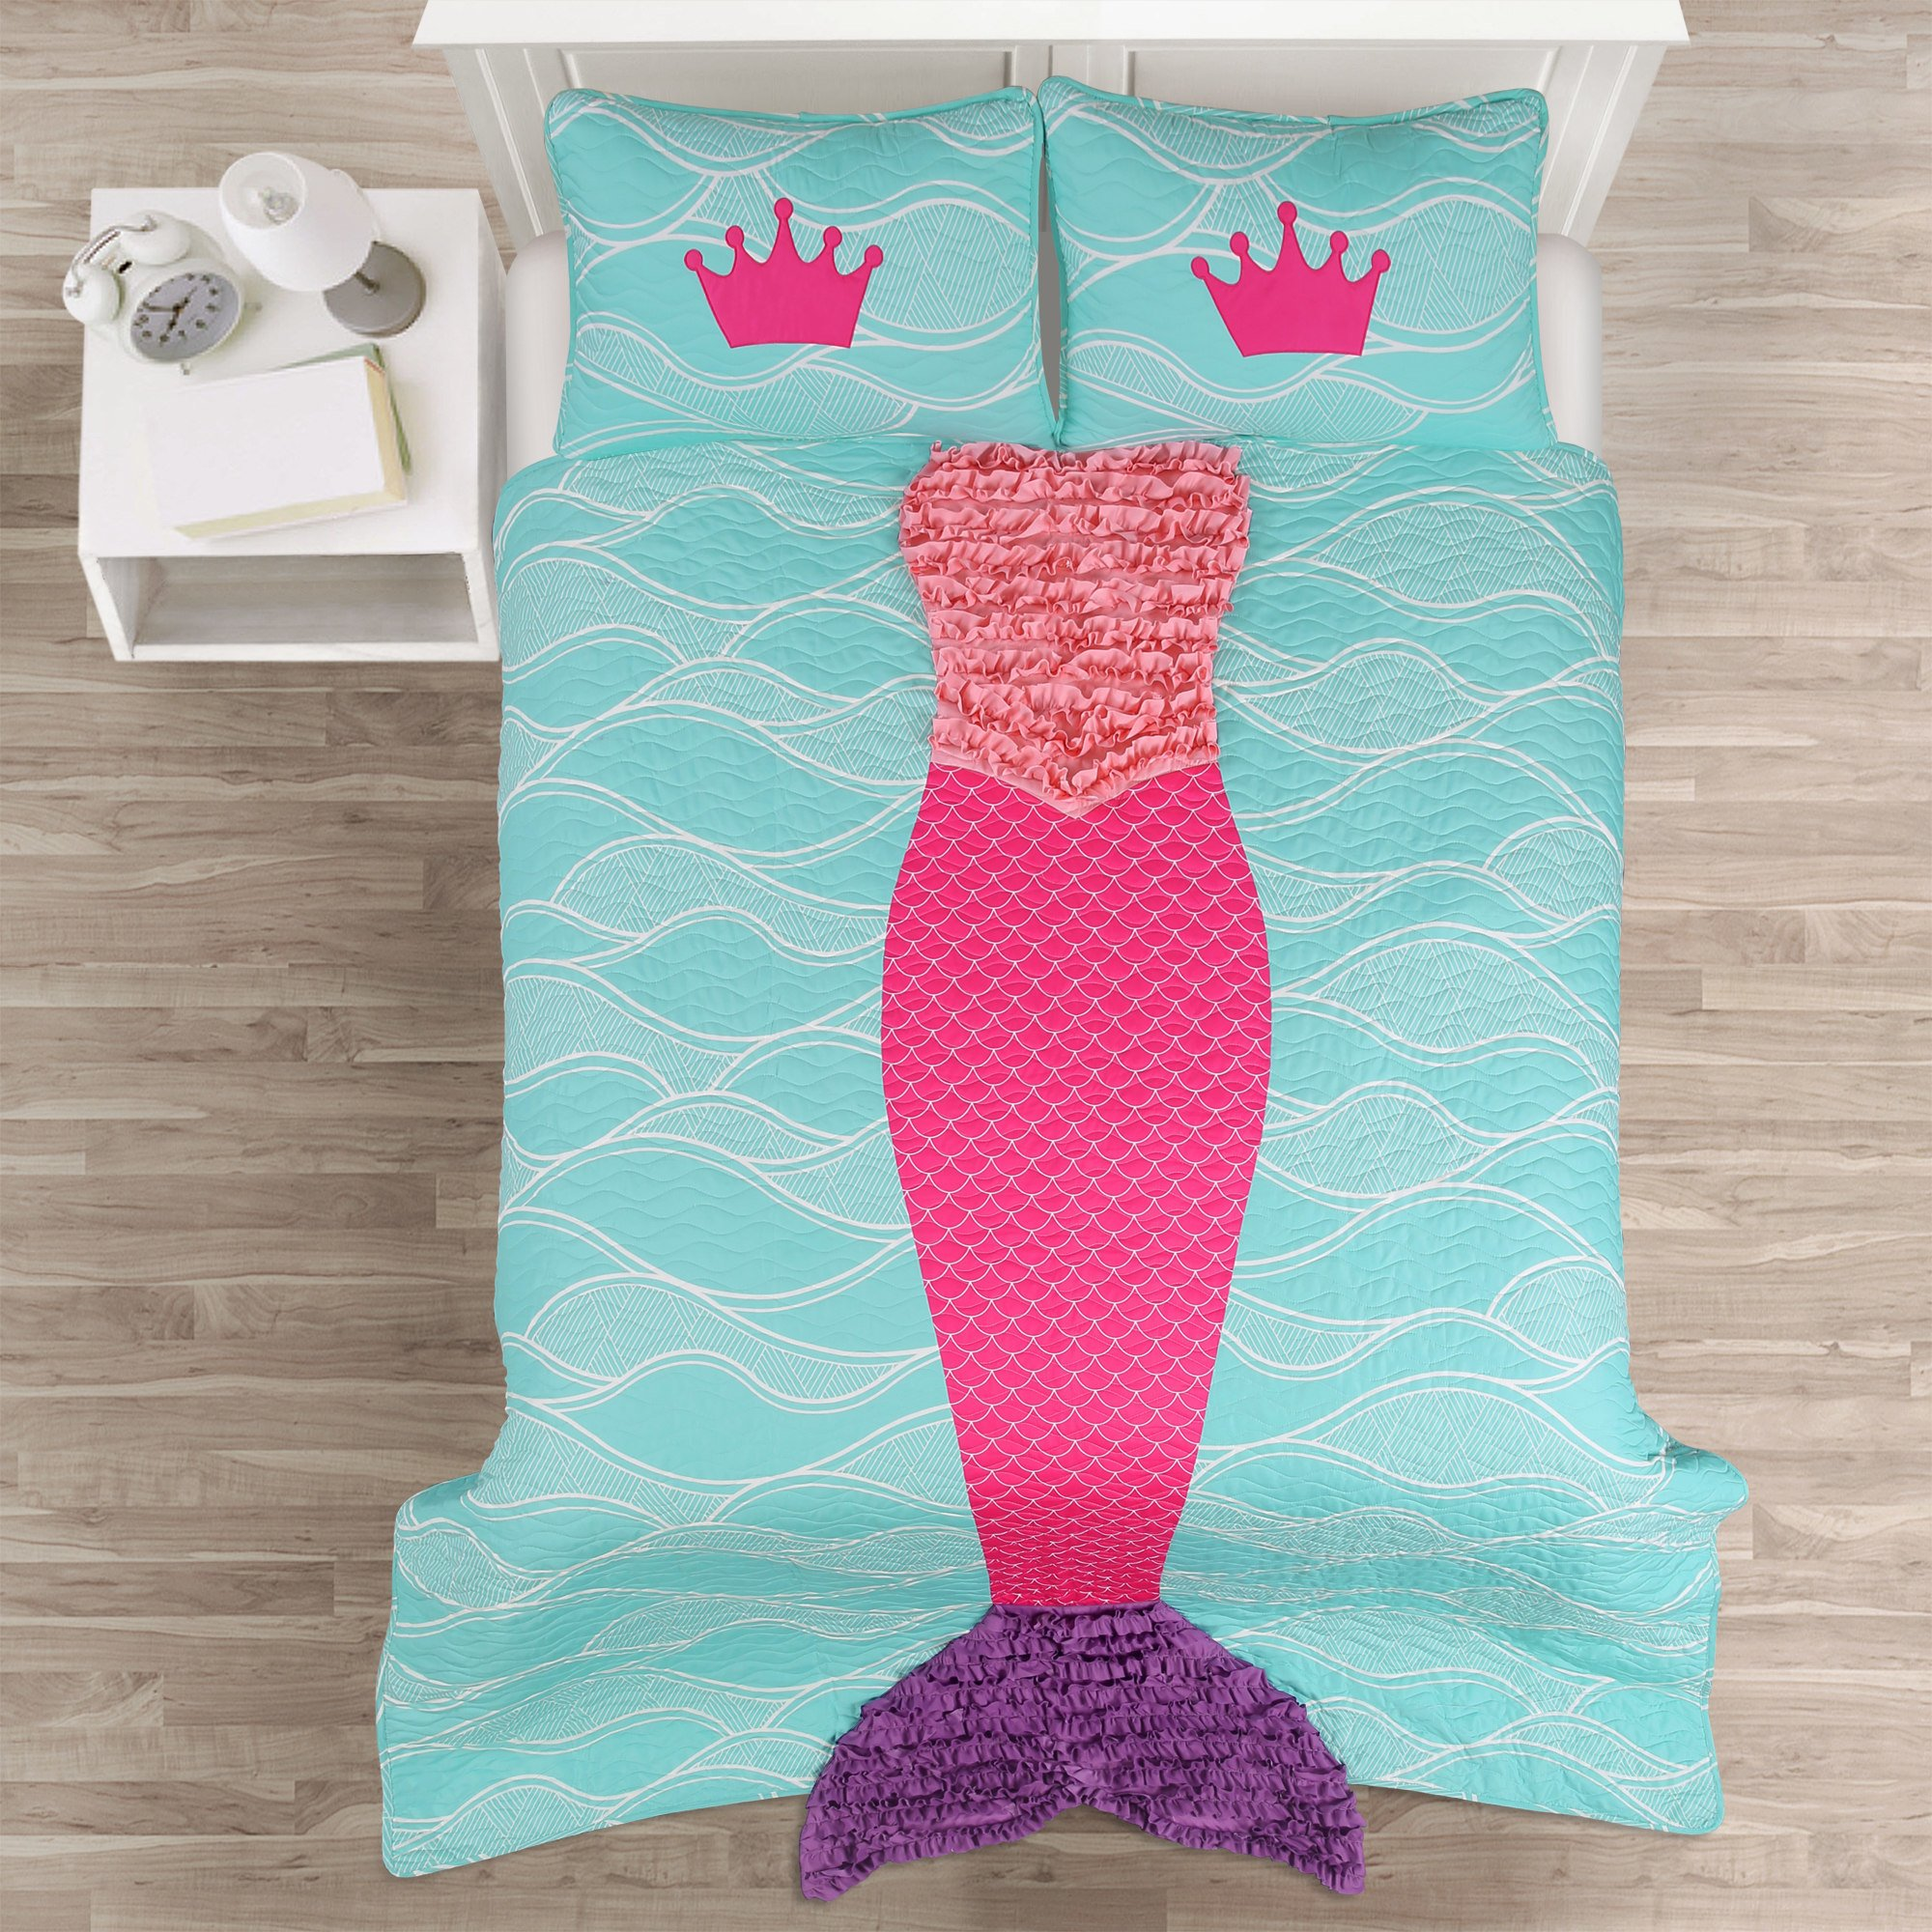 2 Piece Girls Pink Multi Ruffles Mermaid Theme Quilt Twin Set, Deep Sea Princess Whimsical Design, Blue Ocean Waves Background, Purple Embroidered Ruffled Tail, Super Soft & Snuggly Bedding, Polyester